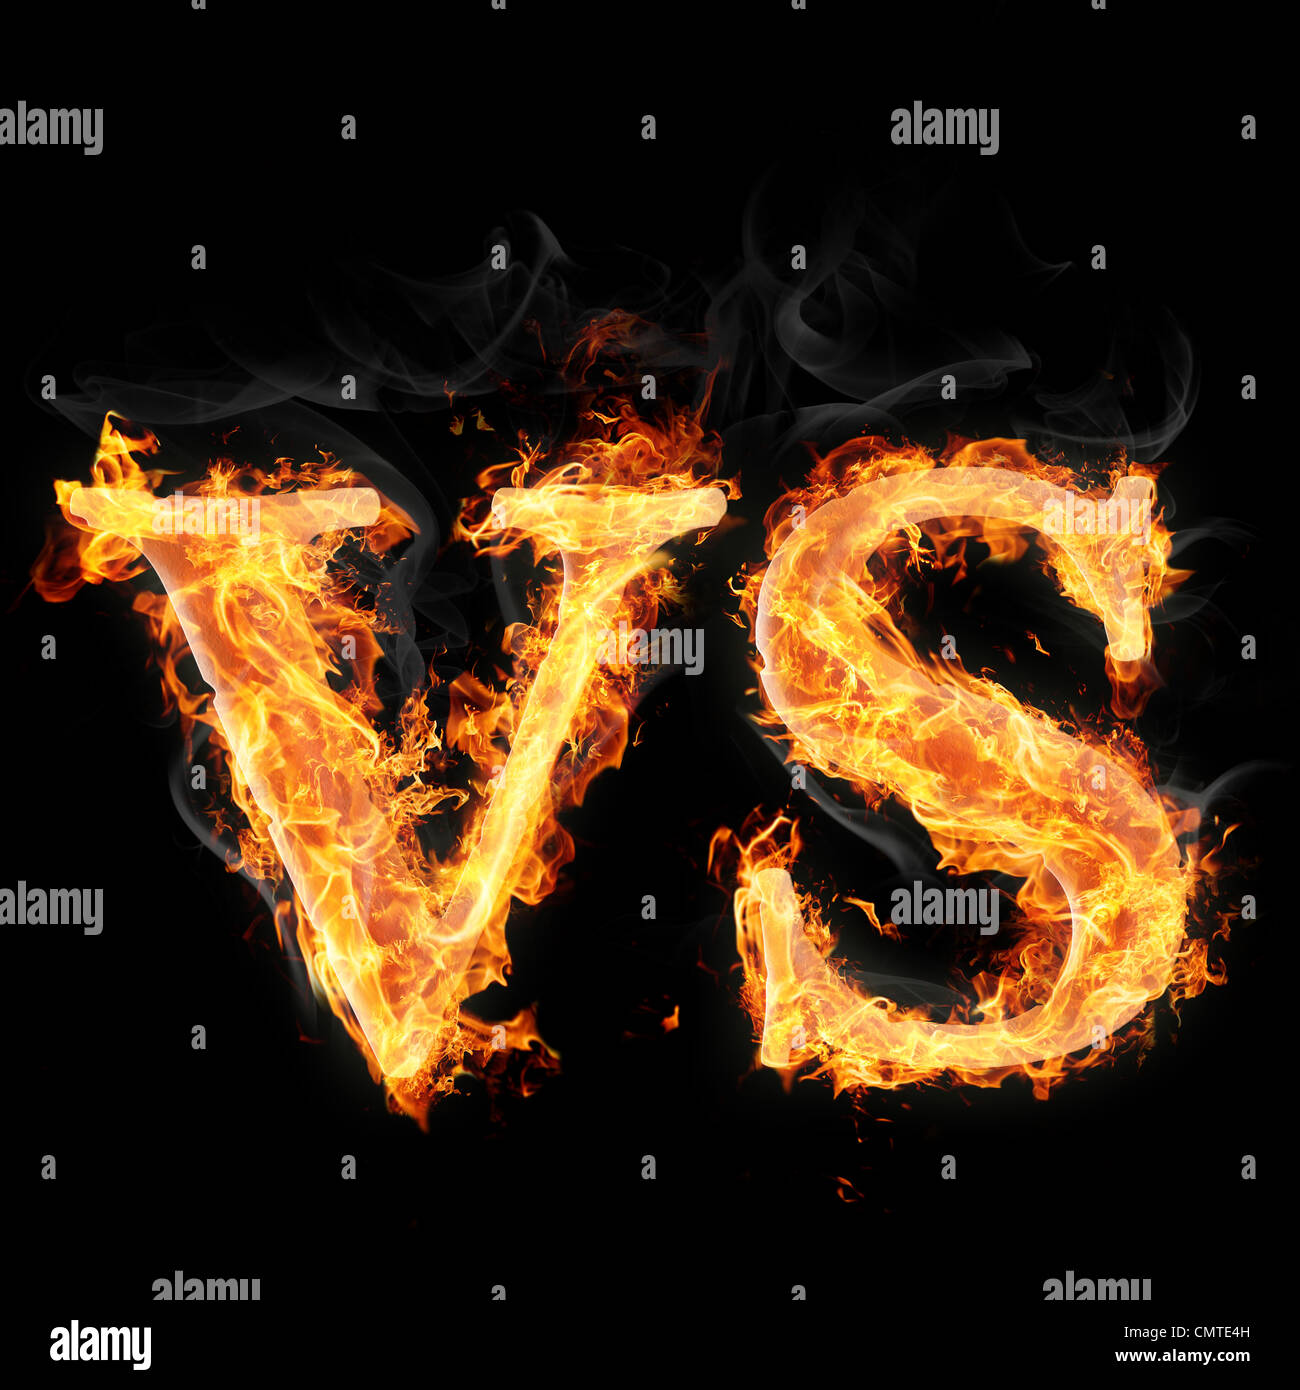 Letters and symbols in fire on black background - Versus - Stock Image